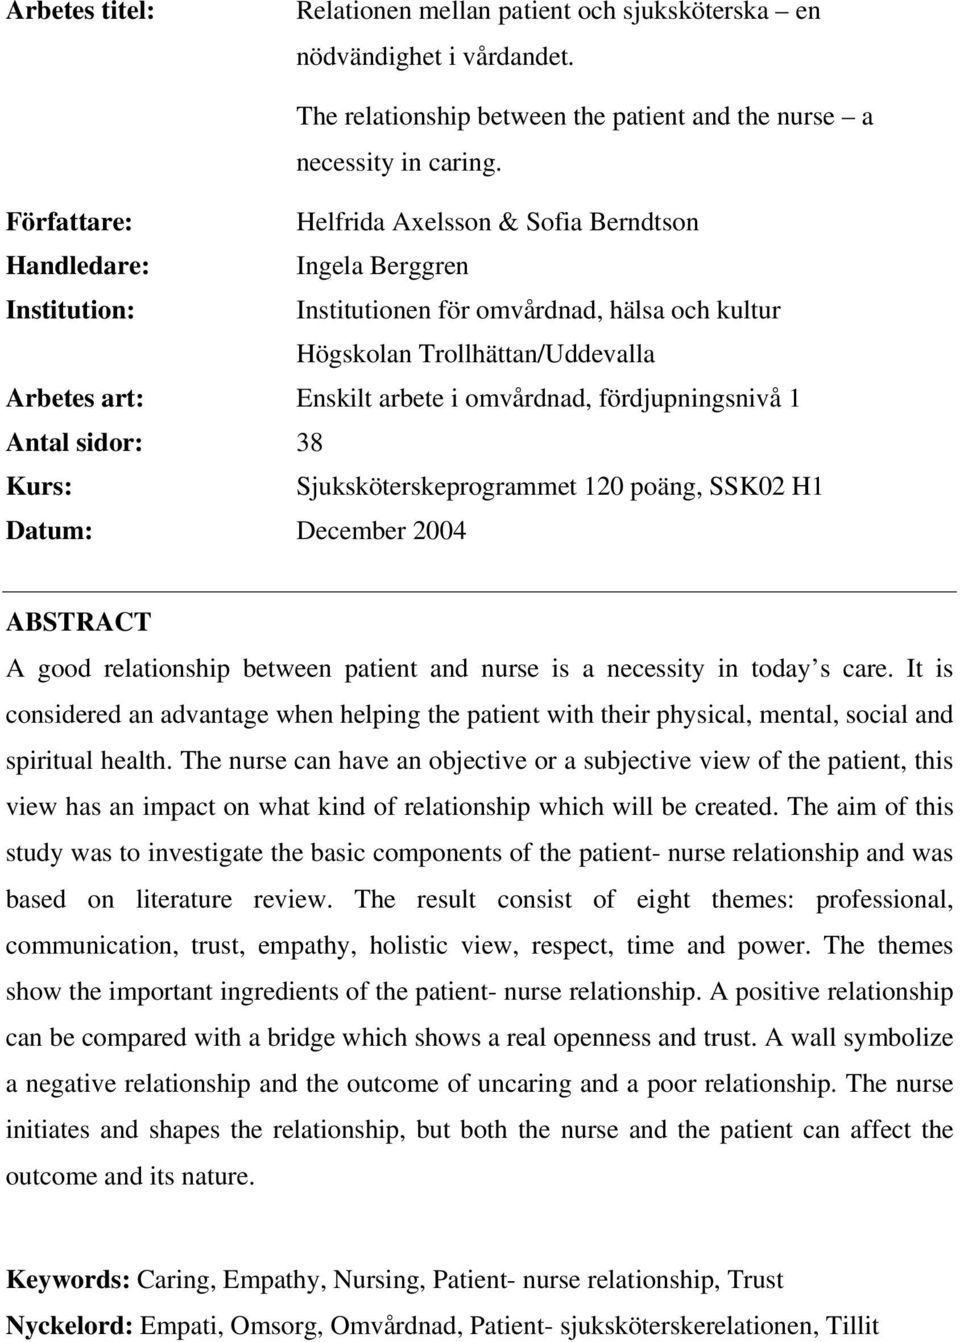 omvårdnad, fördjupningsnivå 1 Antal sidor: 38 Kurs: Sjuksköterskeprogrammet 120 poäng, SSK02 H1 Datum: December 2004 ABSTRACT A good relationship between patient and nurse is a necessity in today s